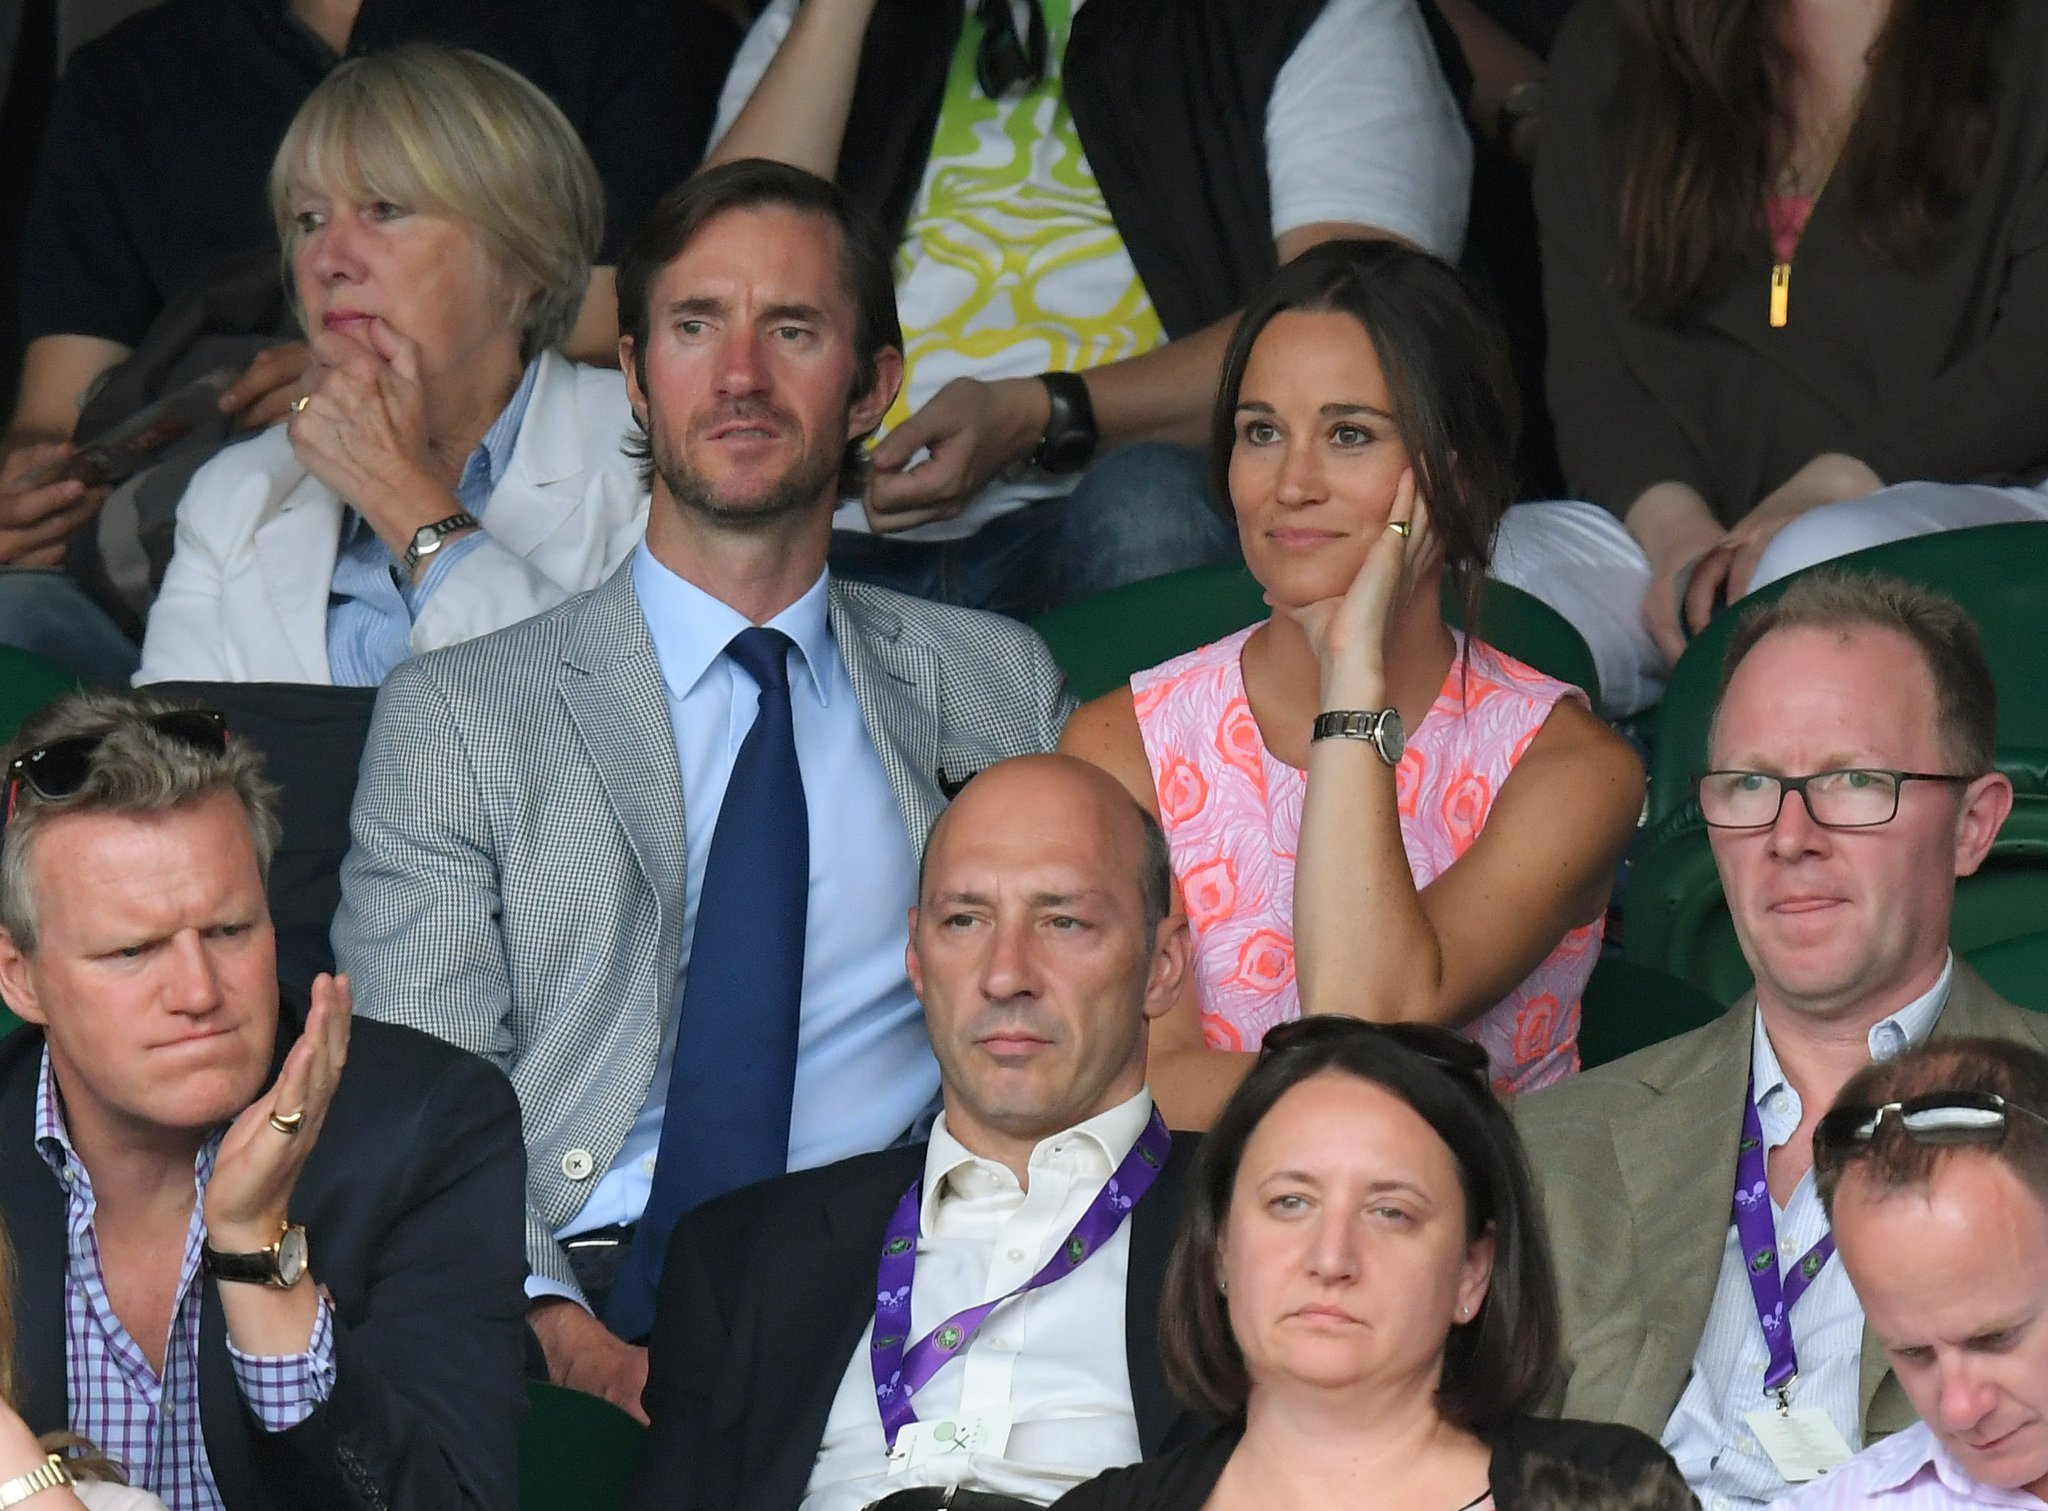 Pippa Middleton and James Matthews's Romance Is Over a Decade in the Making